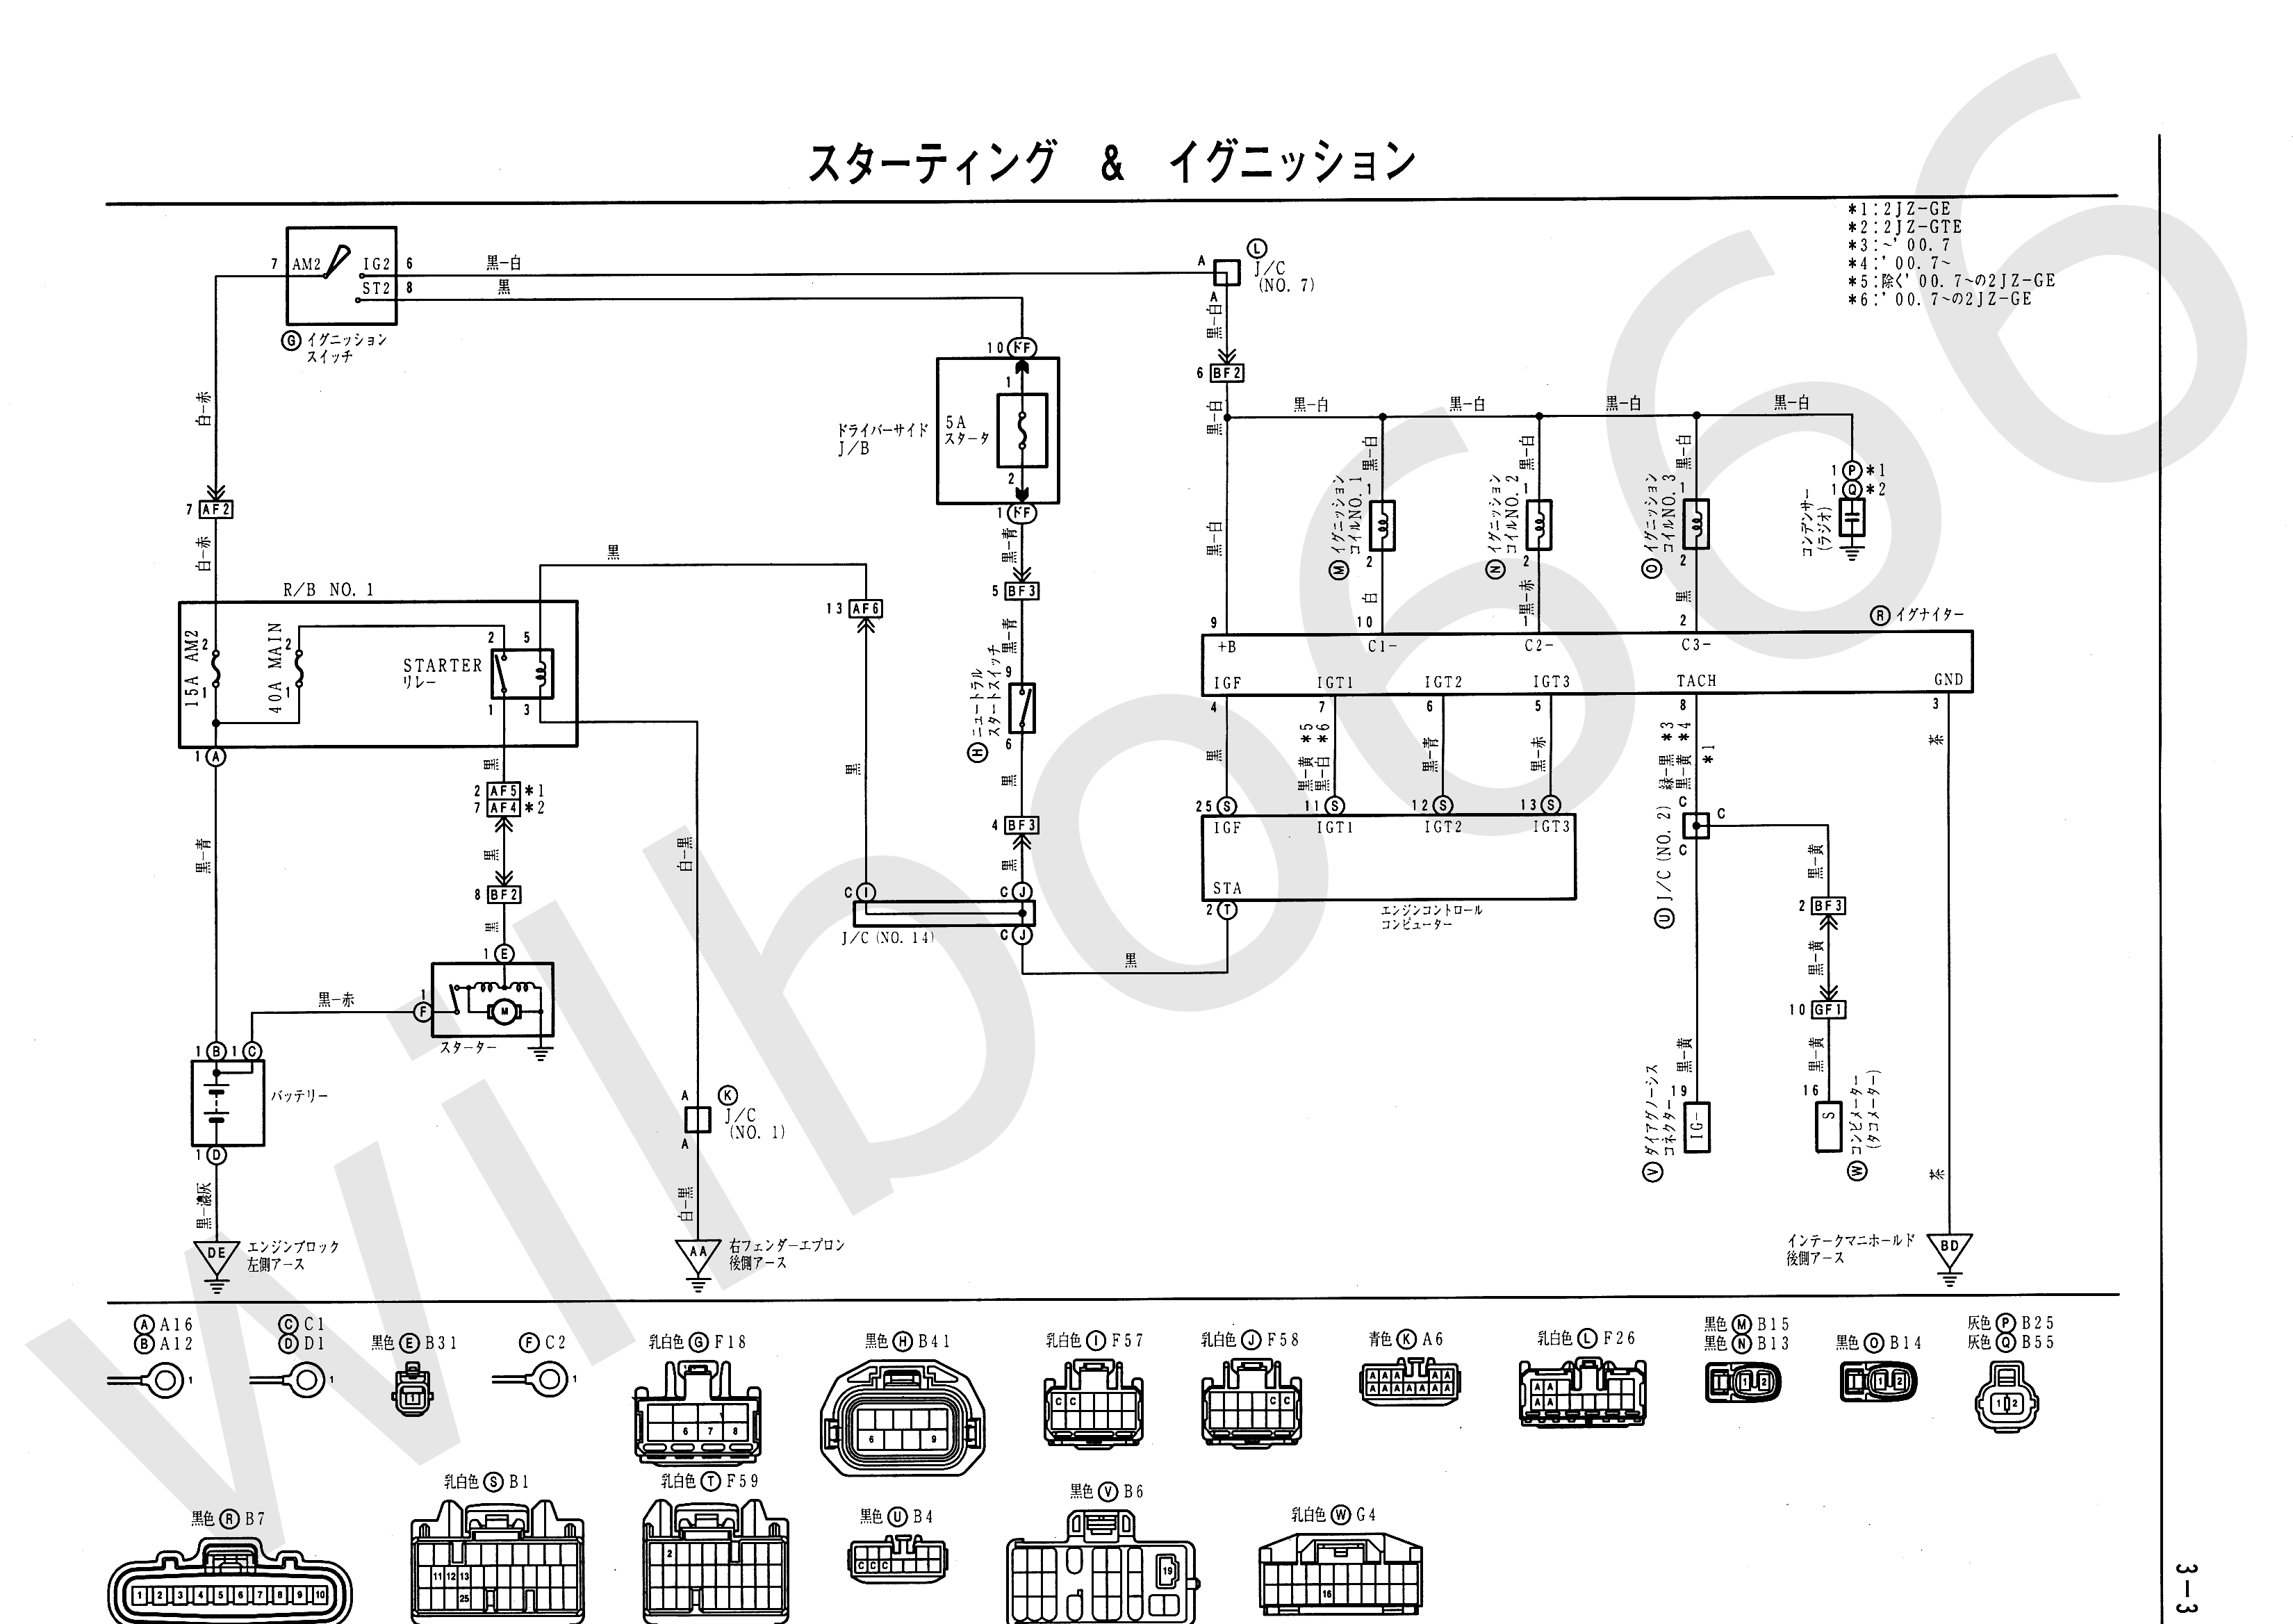 JZS161 Electrical Wiring Diagram 6748505 3 3 wilbo666 2jz gte vvti jzs161 aristo engine wiring 2jzgte wiring diagram at mifinder.co